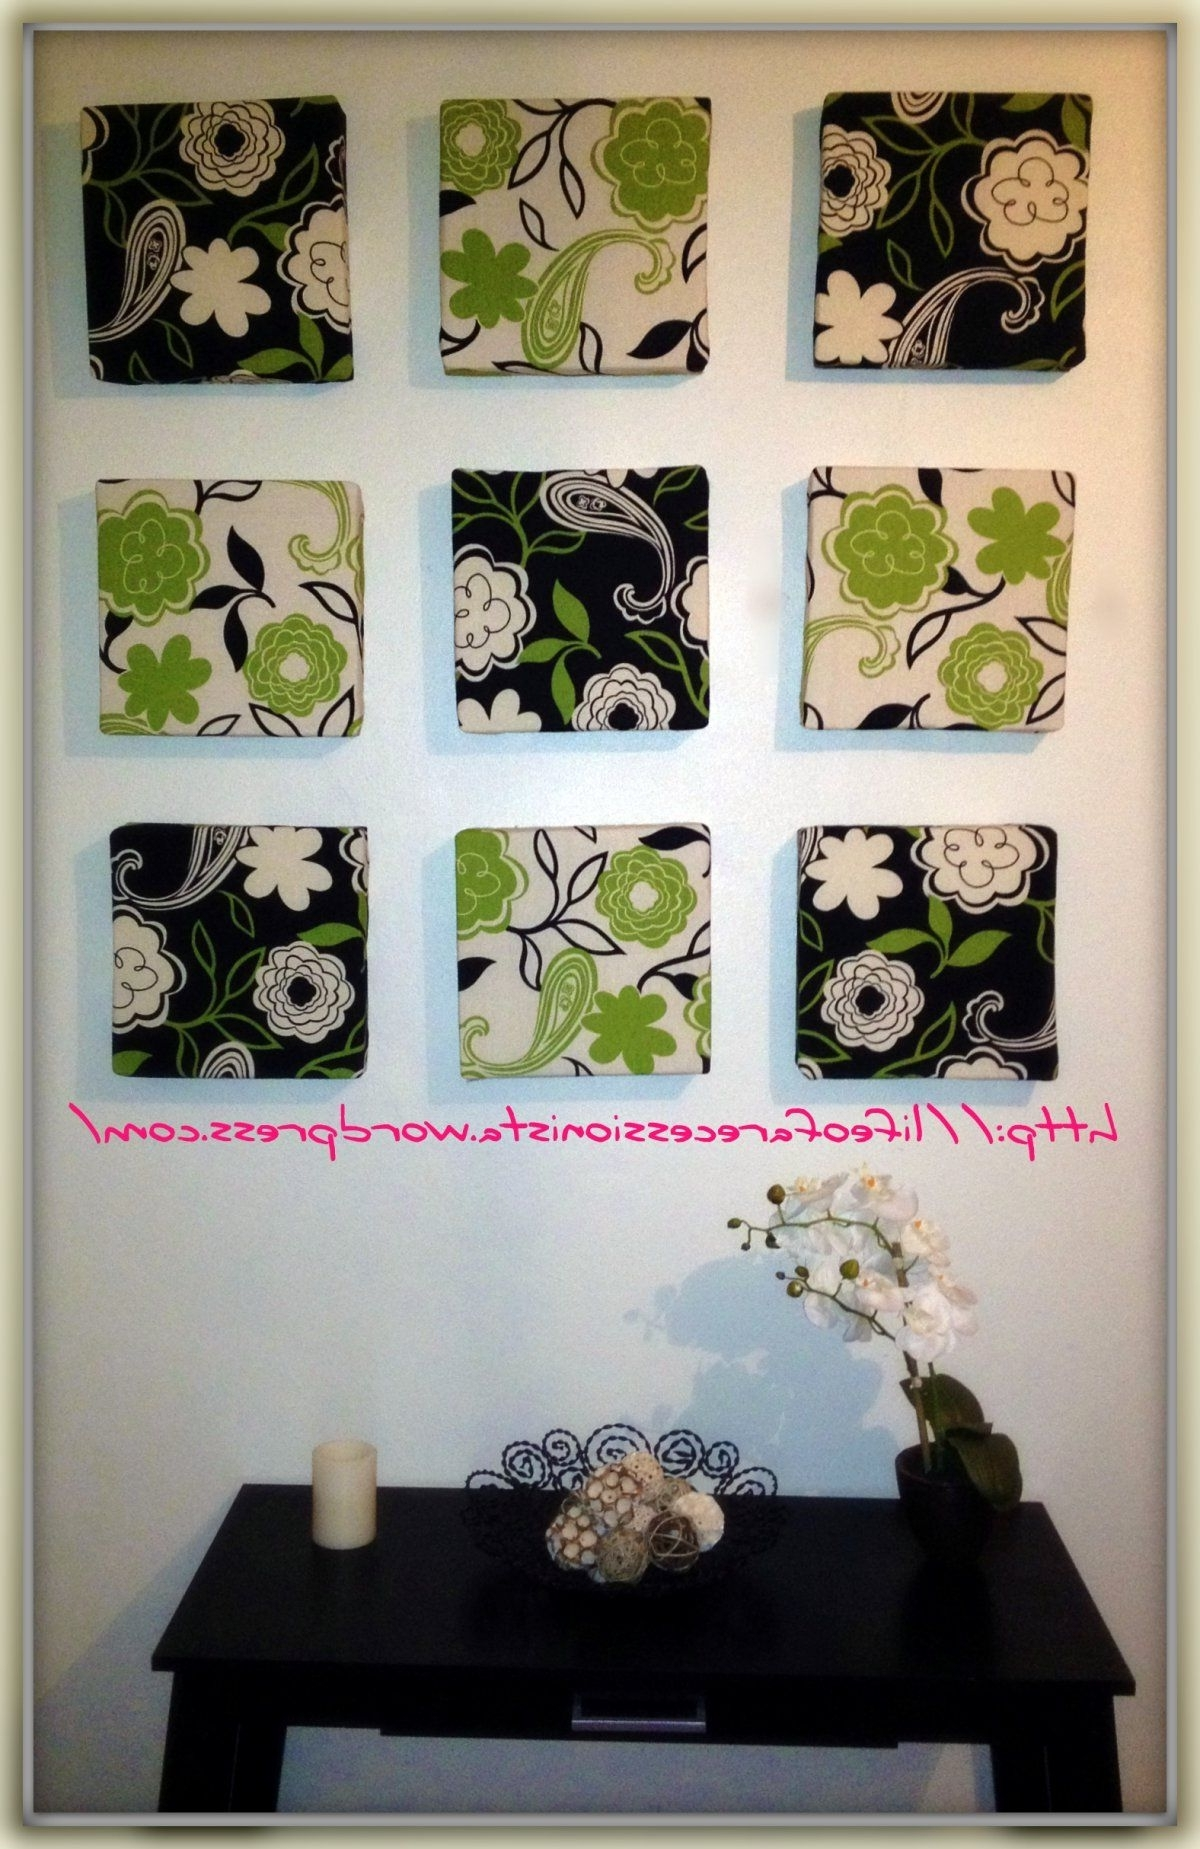 Most Recent From Faux Fireplaces And Chinese Pottery Art To Marble Frame Pertaining To Fabric Covered Squares Wall Art (View 7 of 15)